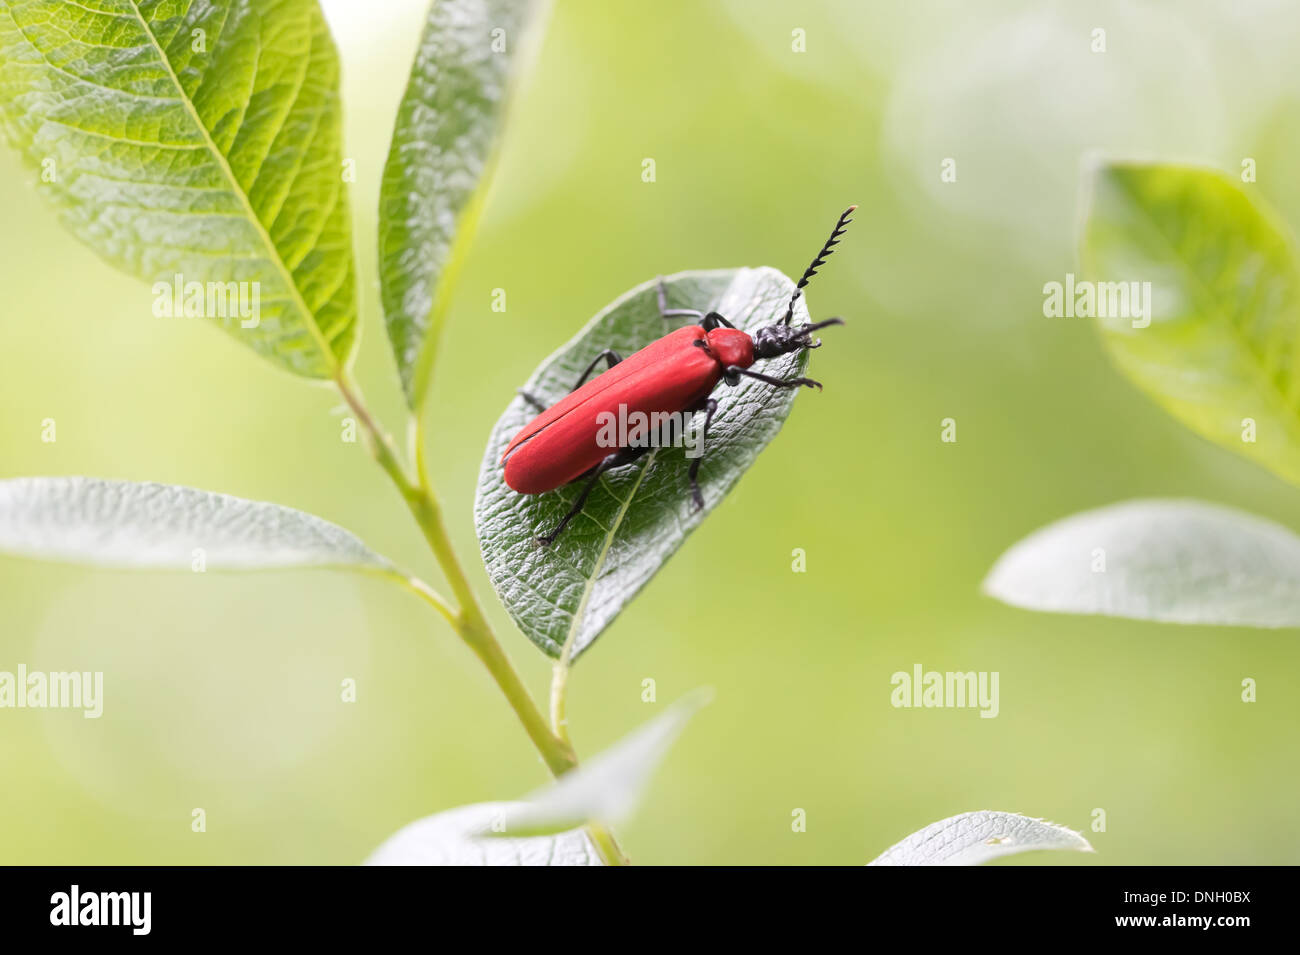 Black-headed cardinal beetle (Pyrochroa coccinea). Surrey, UK. - Stock Image